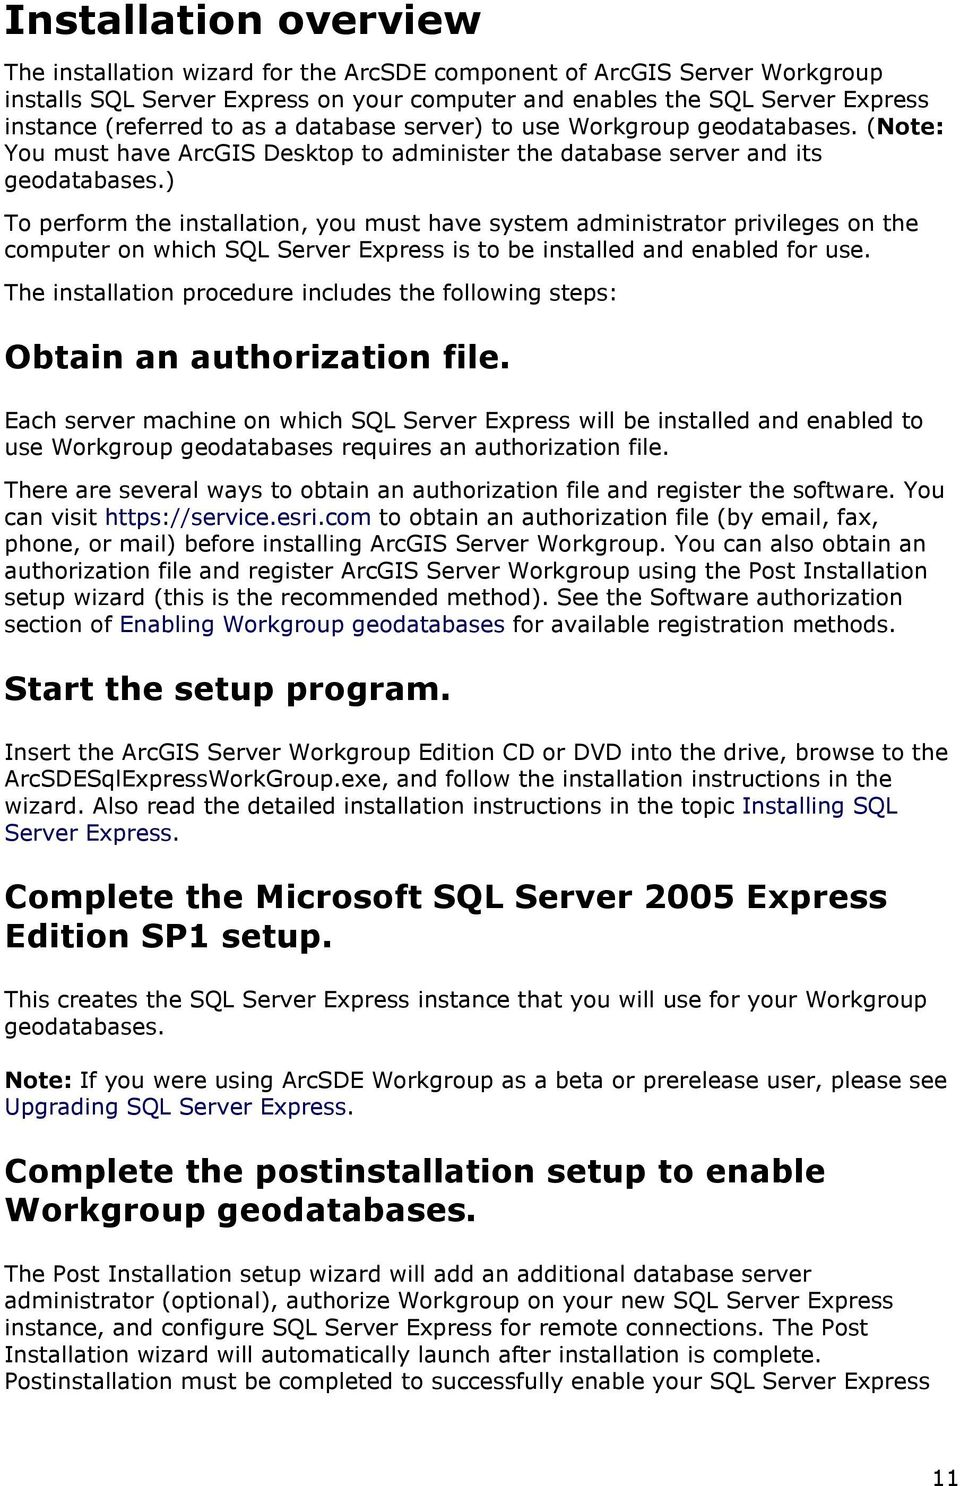 ) To perform the installation, you must have system administrator privileges on the computer on which SQL Server Express is to be installed and enabled for use.